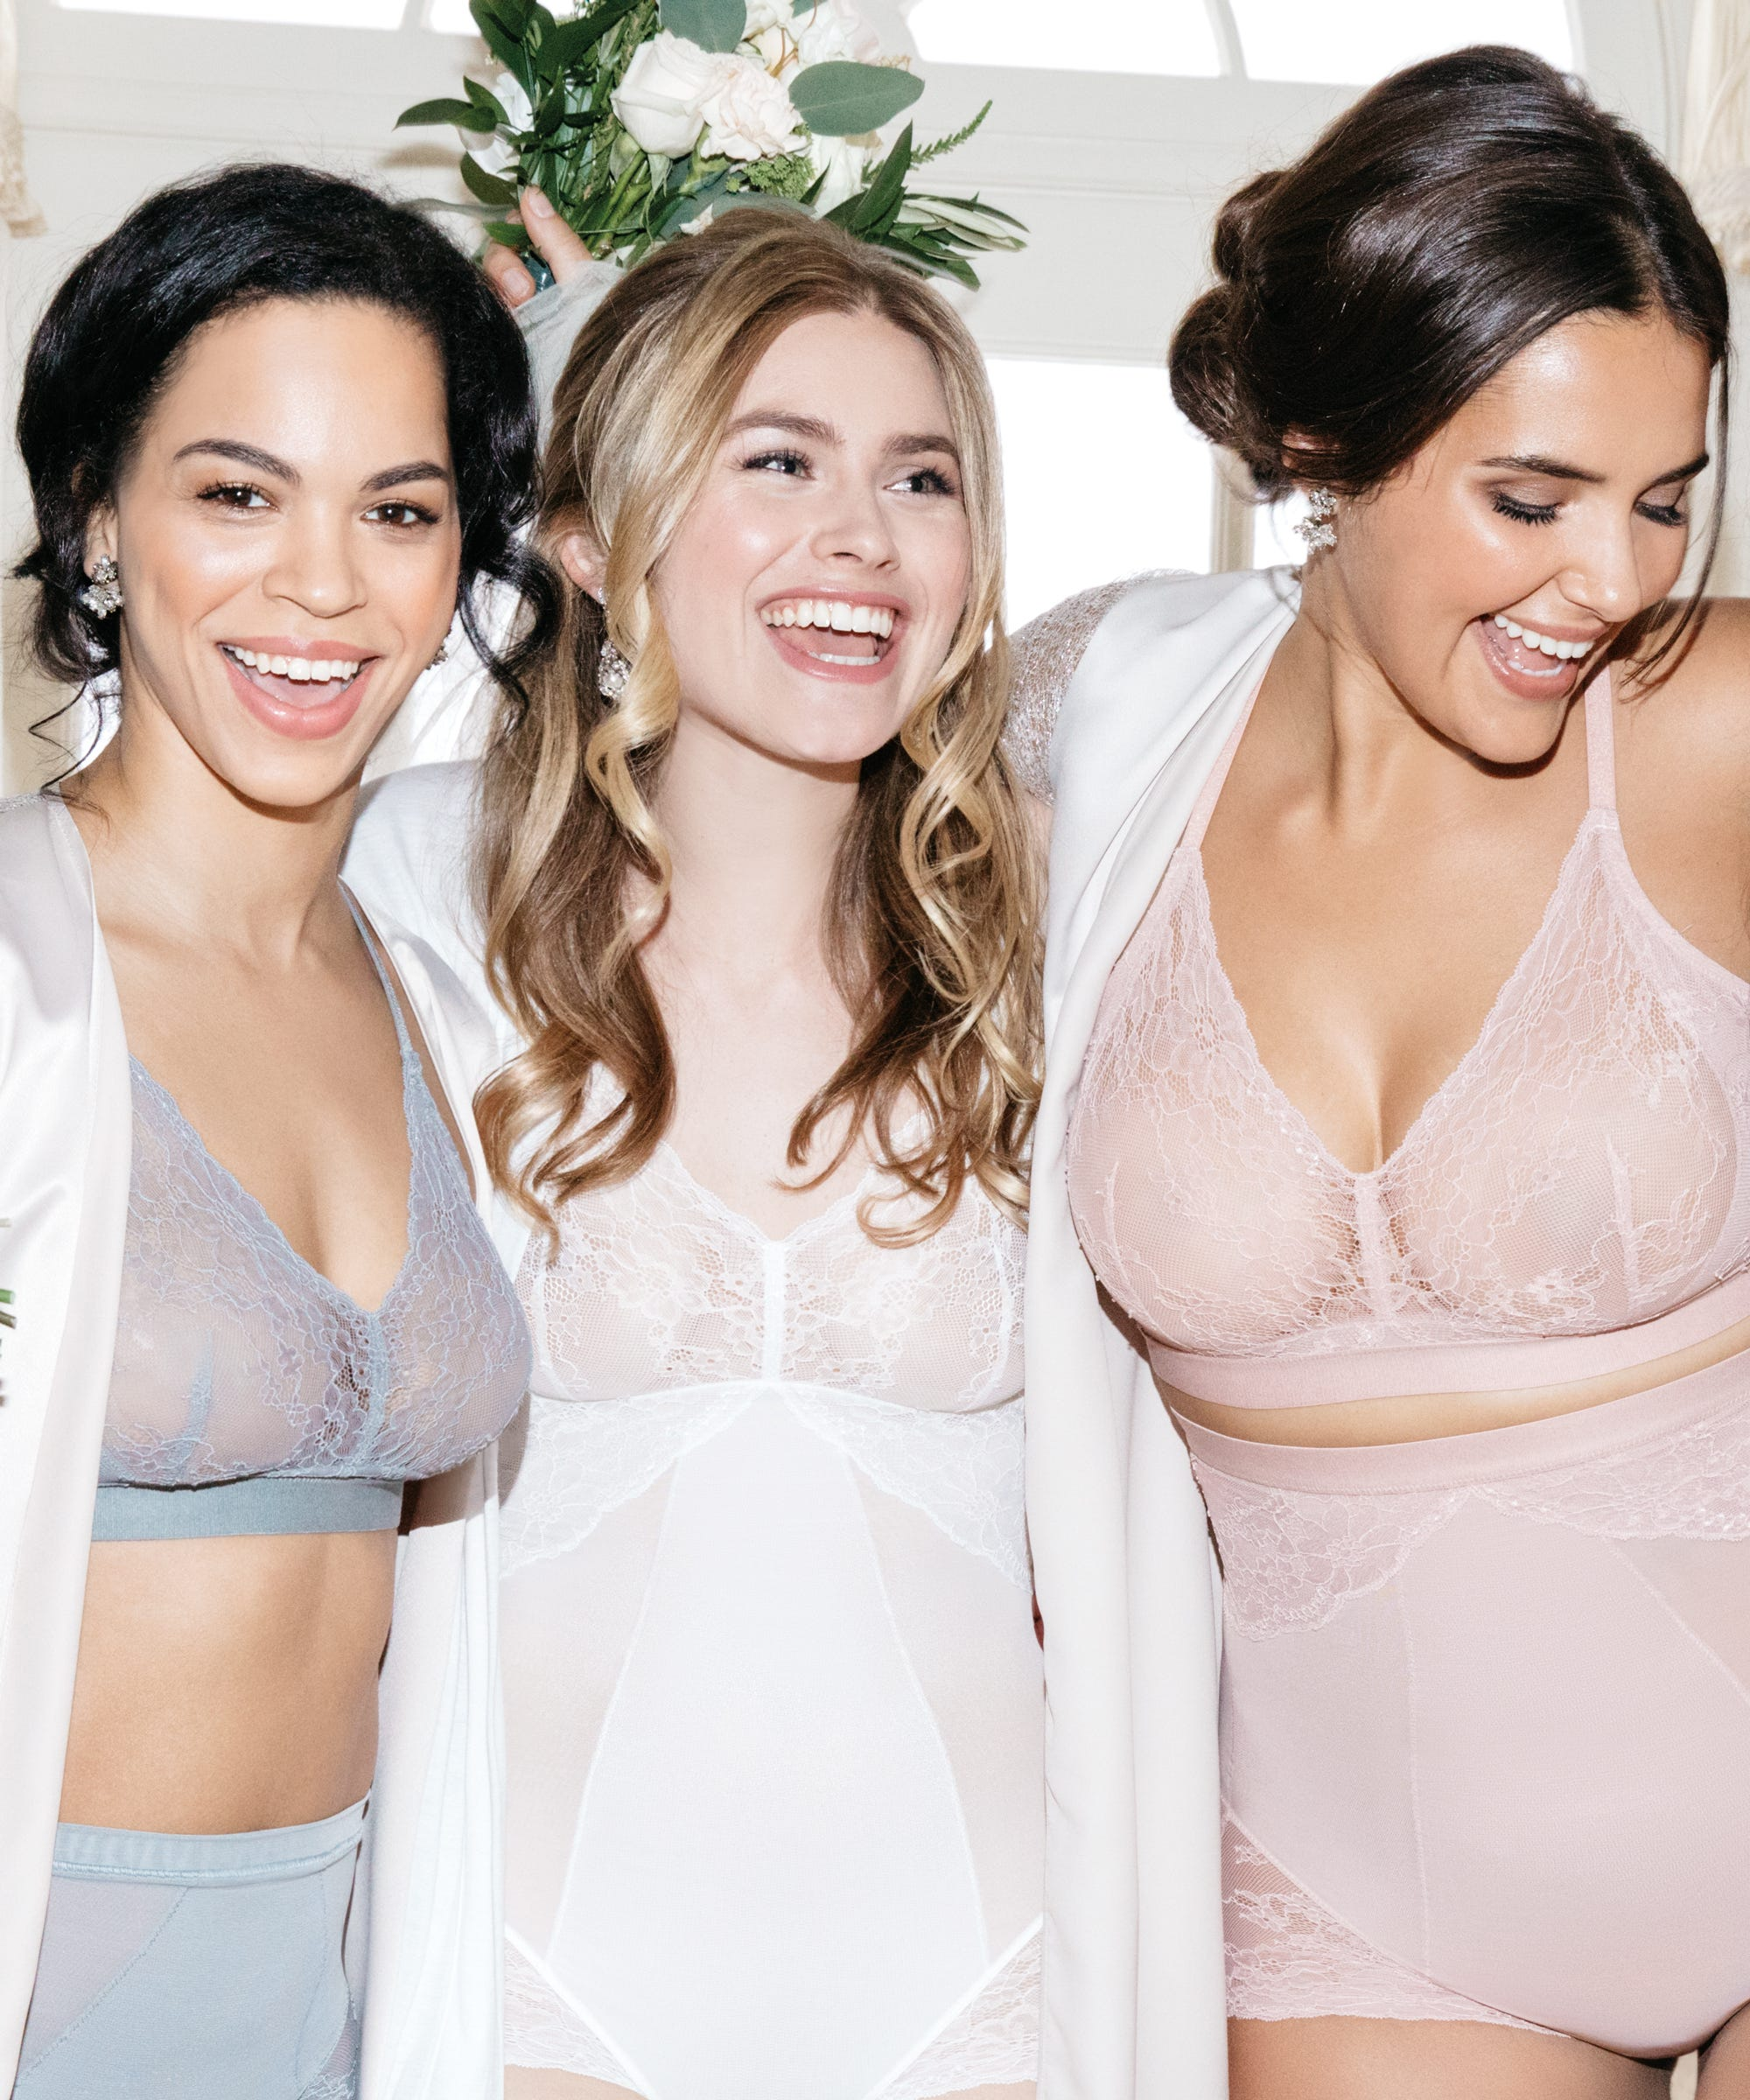 Spanx Launched A Major New Category That's Almost Too Pretty To Be Shapewear